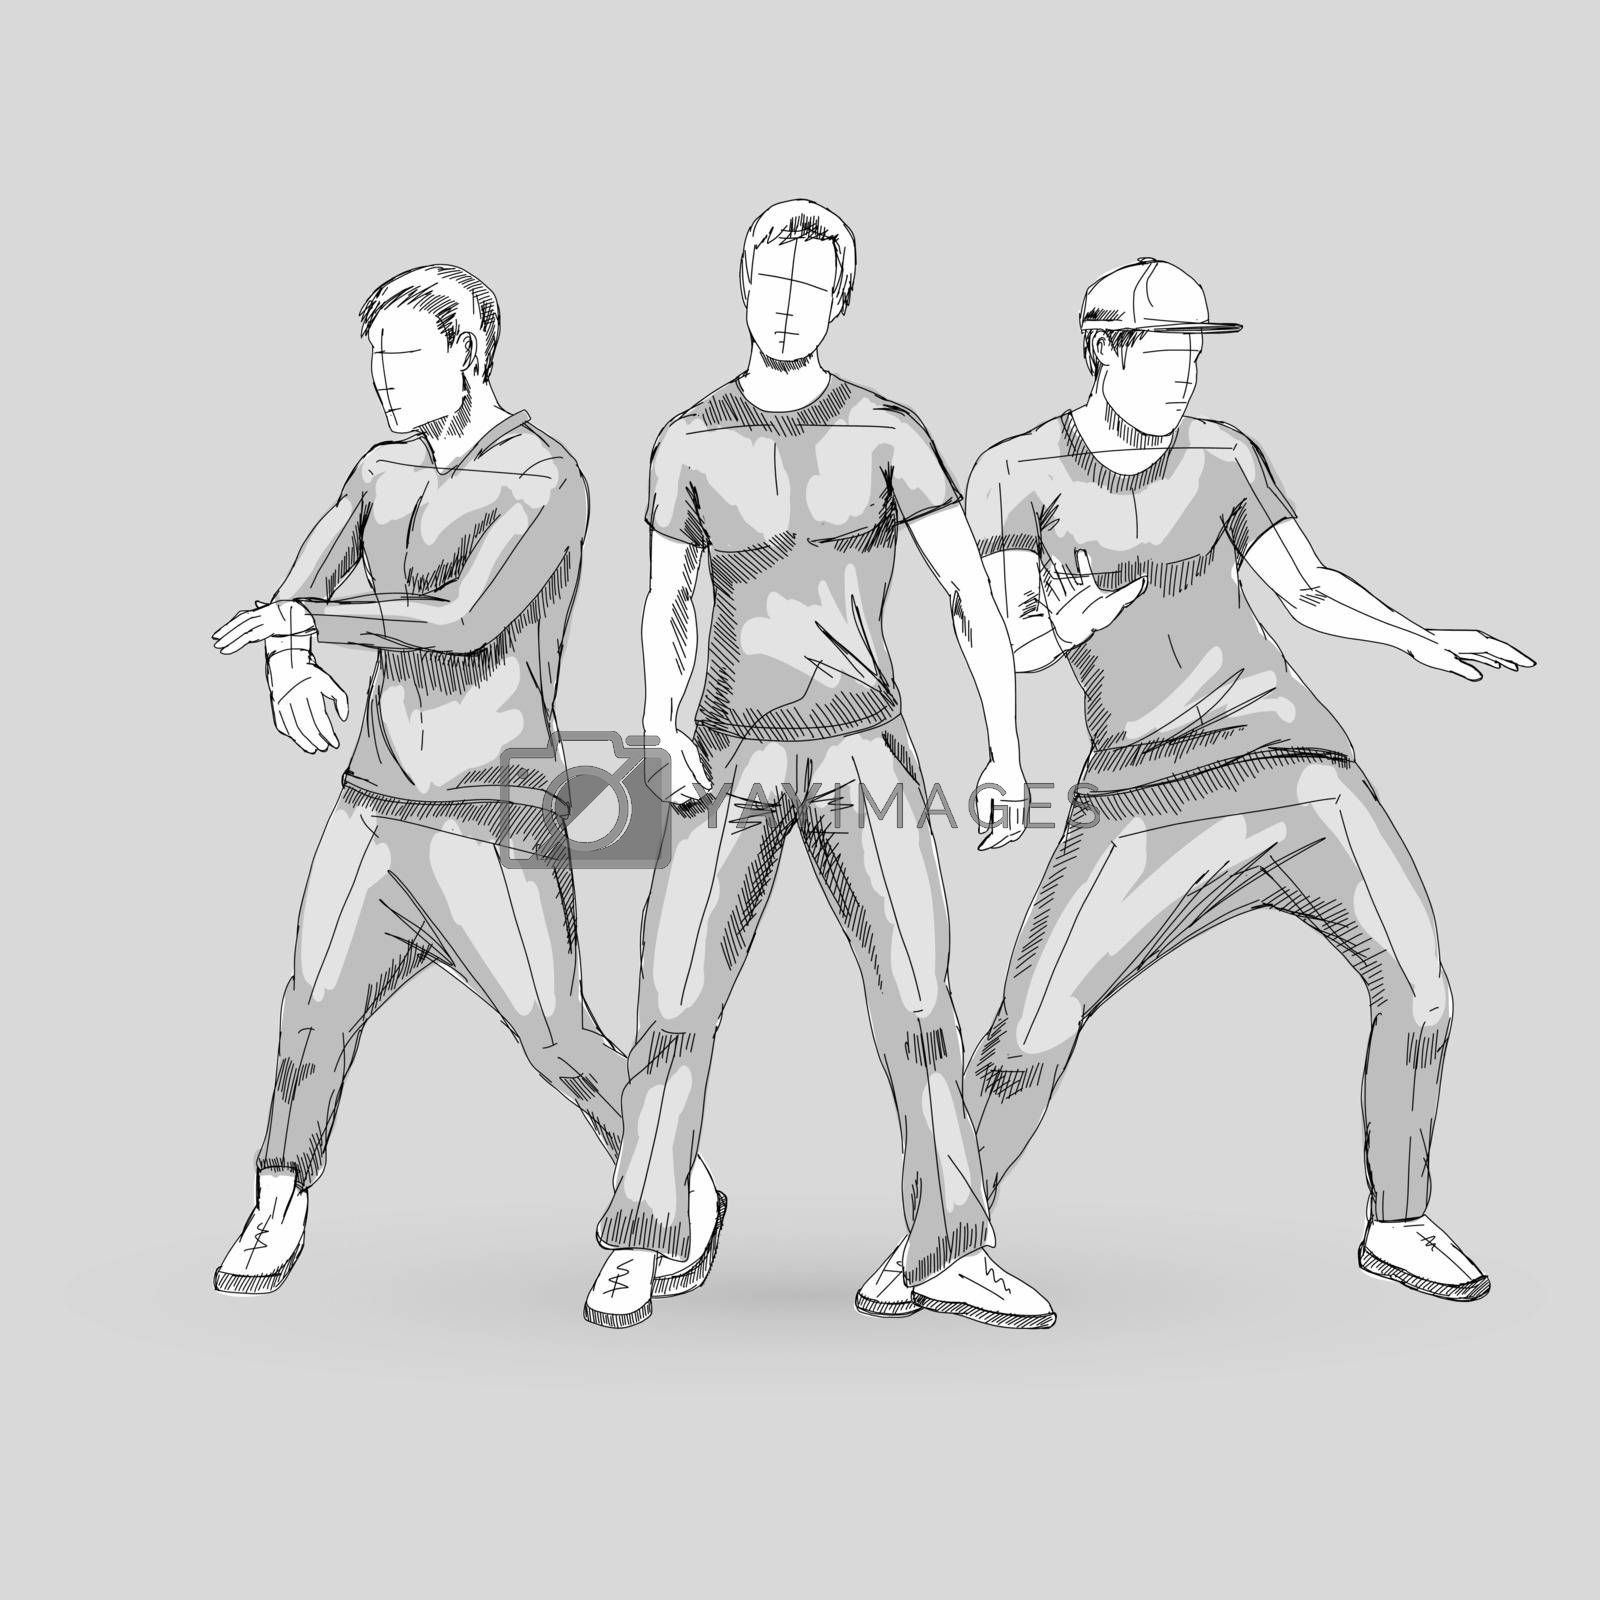 Set of Three Sketch Dancing Males in Different Poses on the Dance Floor